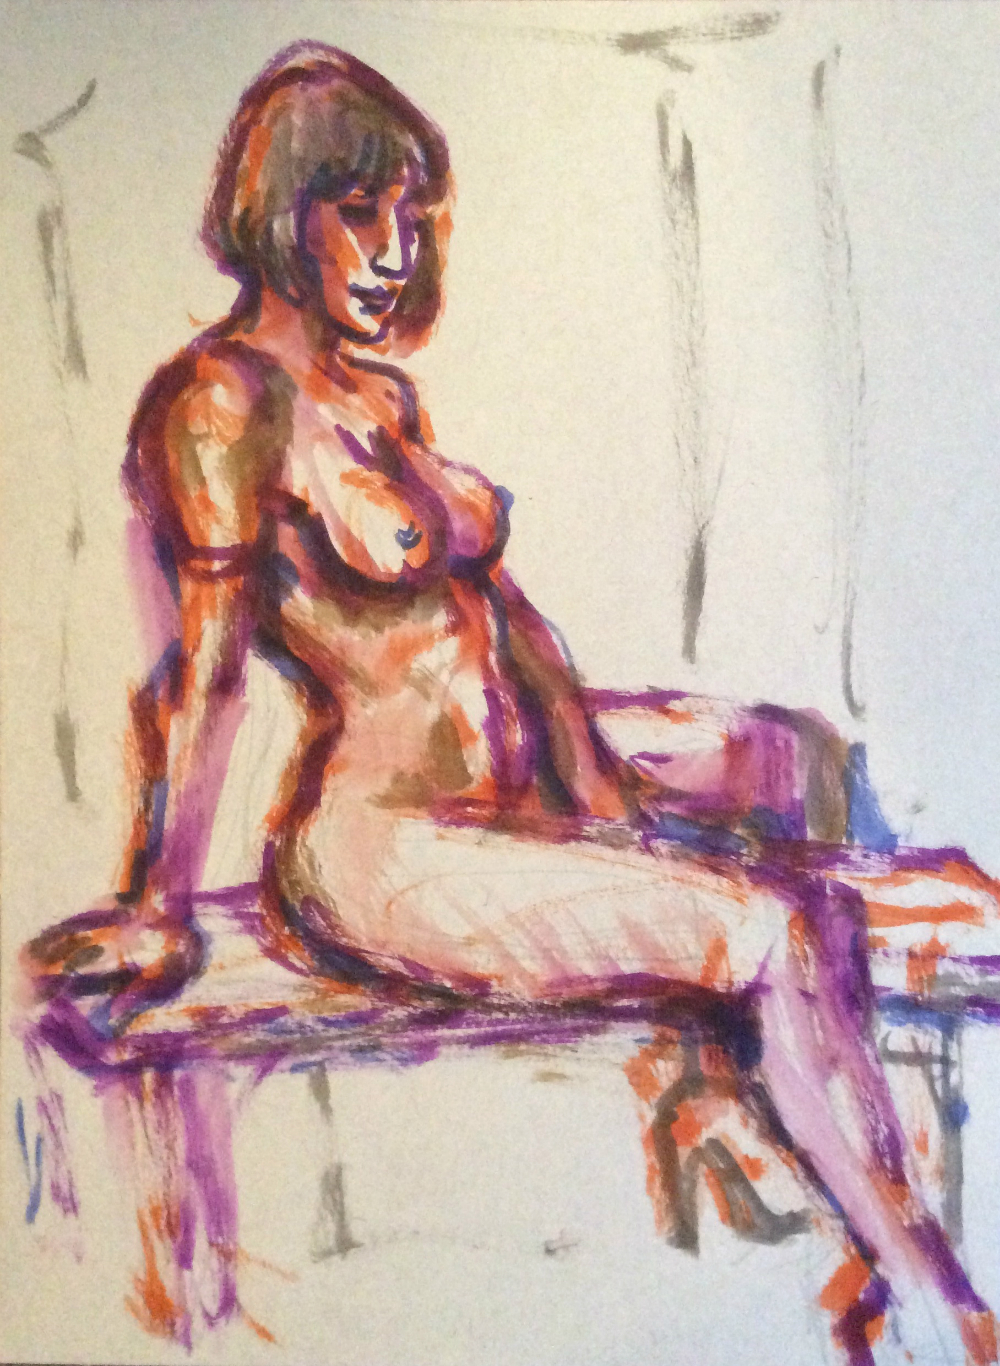 Watercolor brush pen drawing of Chiqui Love nude seated by Suzanne Forbes Jan 28 2020